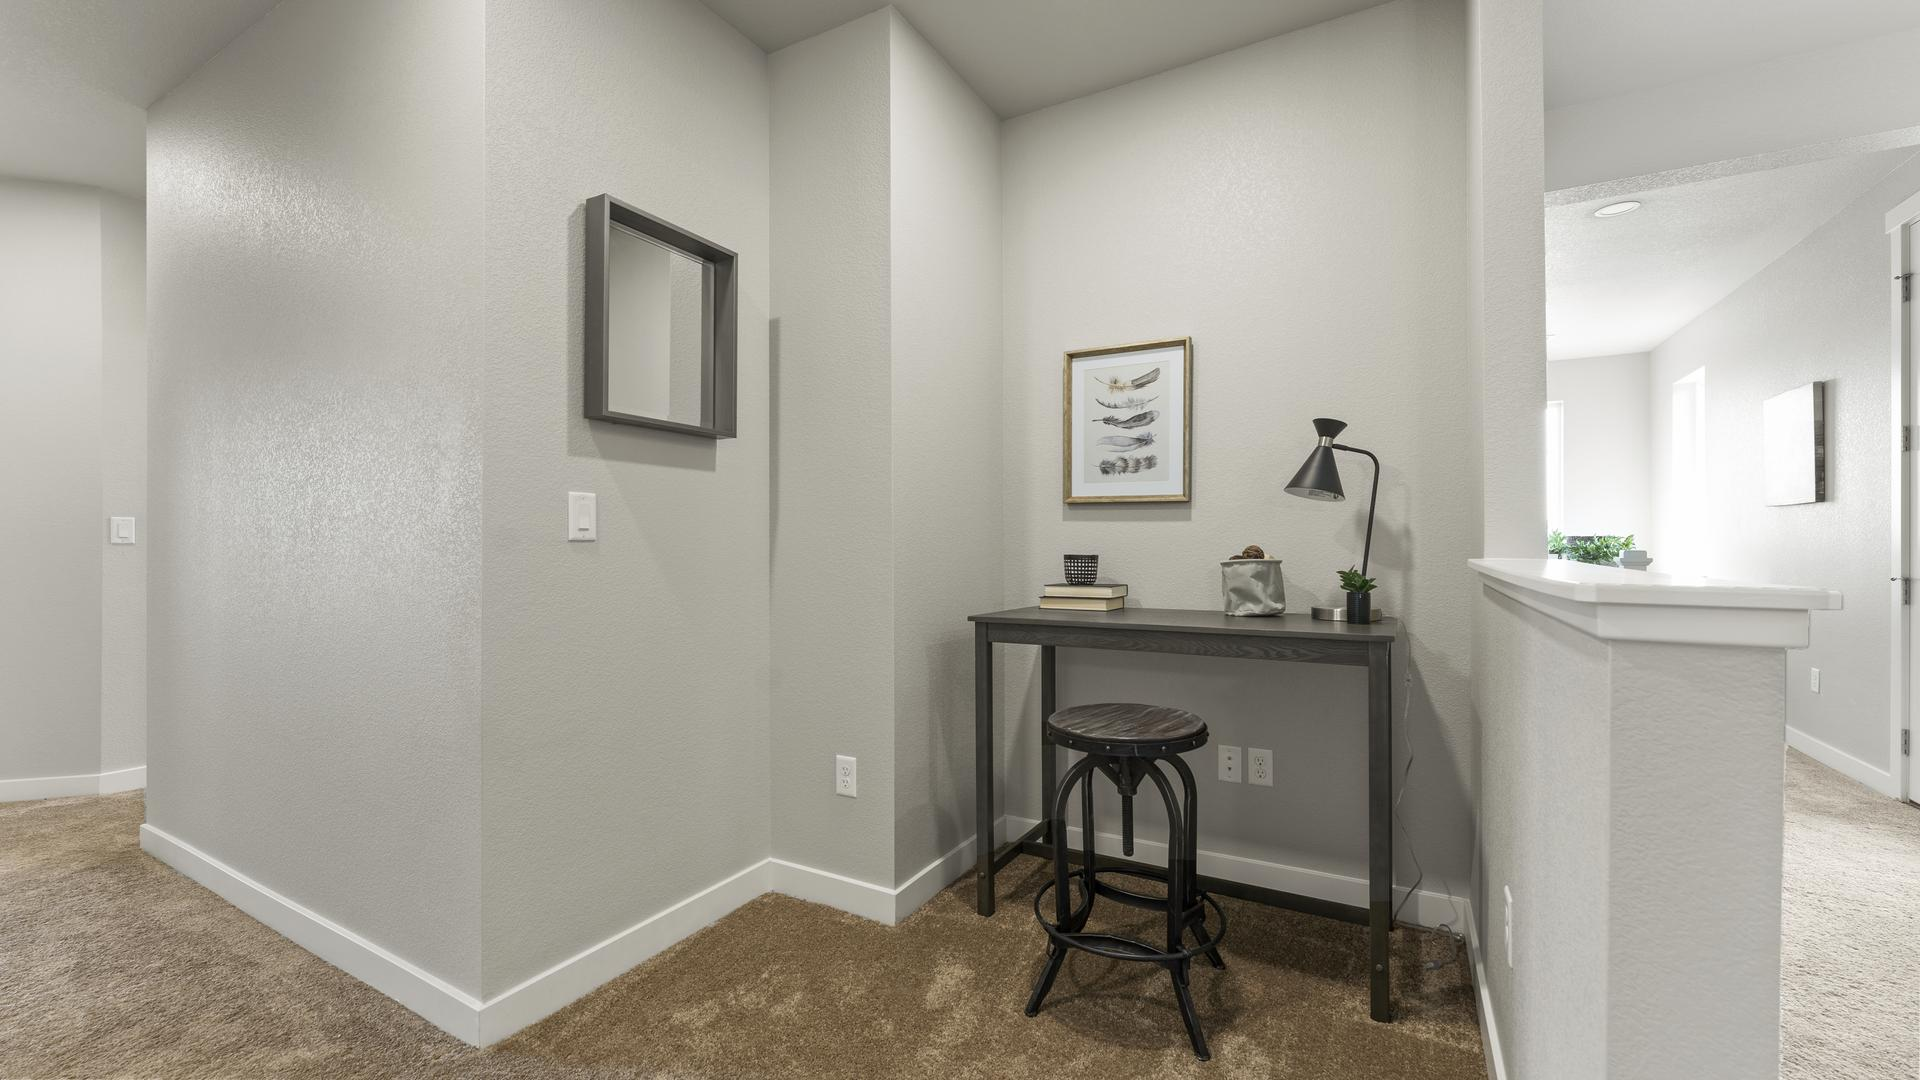 Flex Space - Not Actual Home - Finishes Will Vary